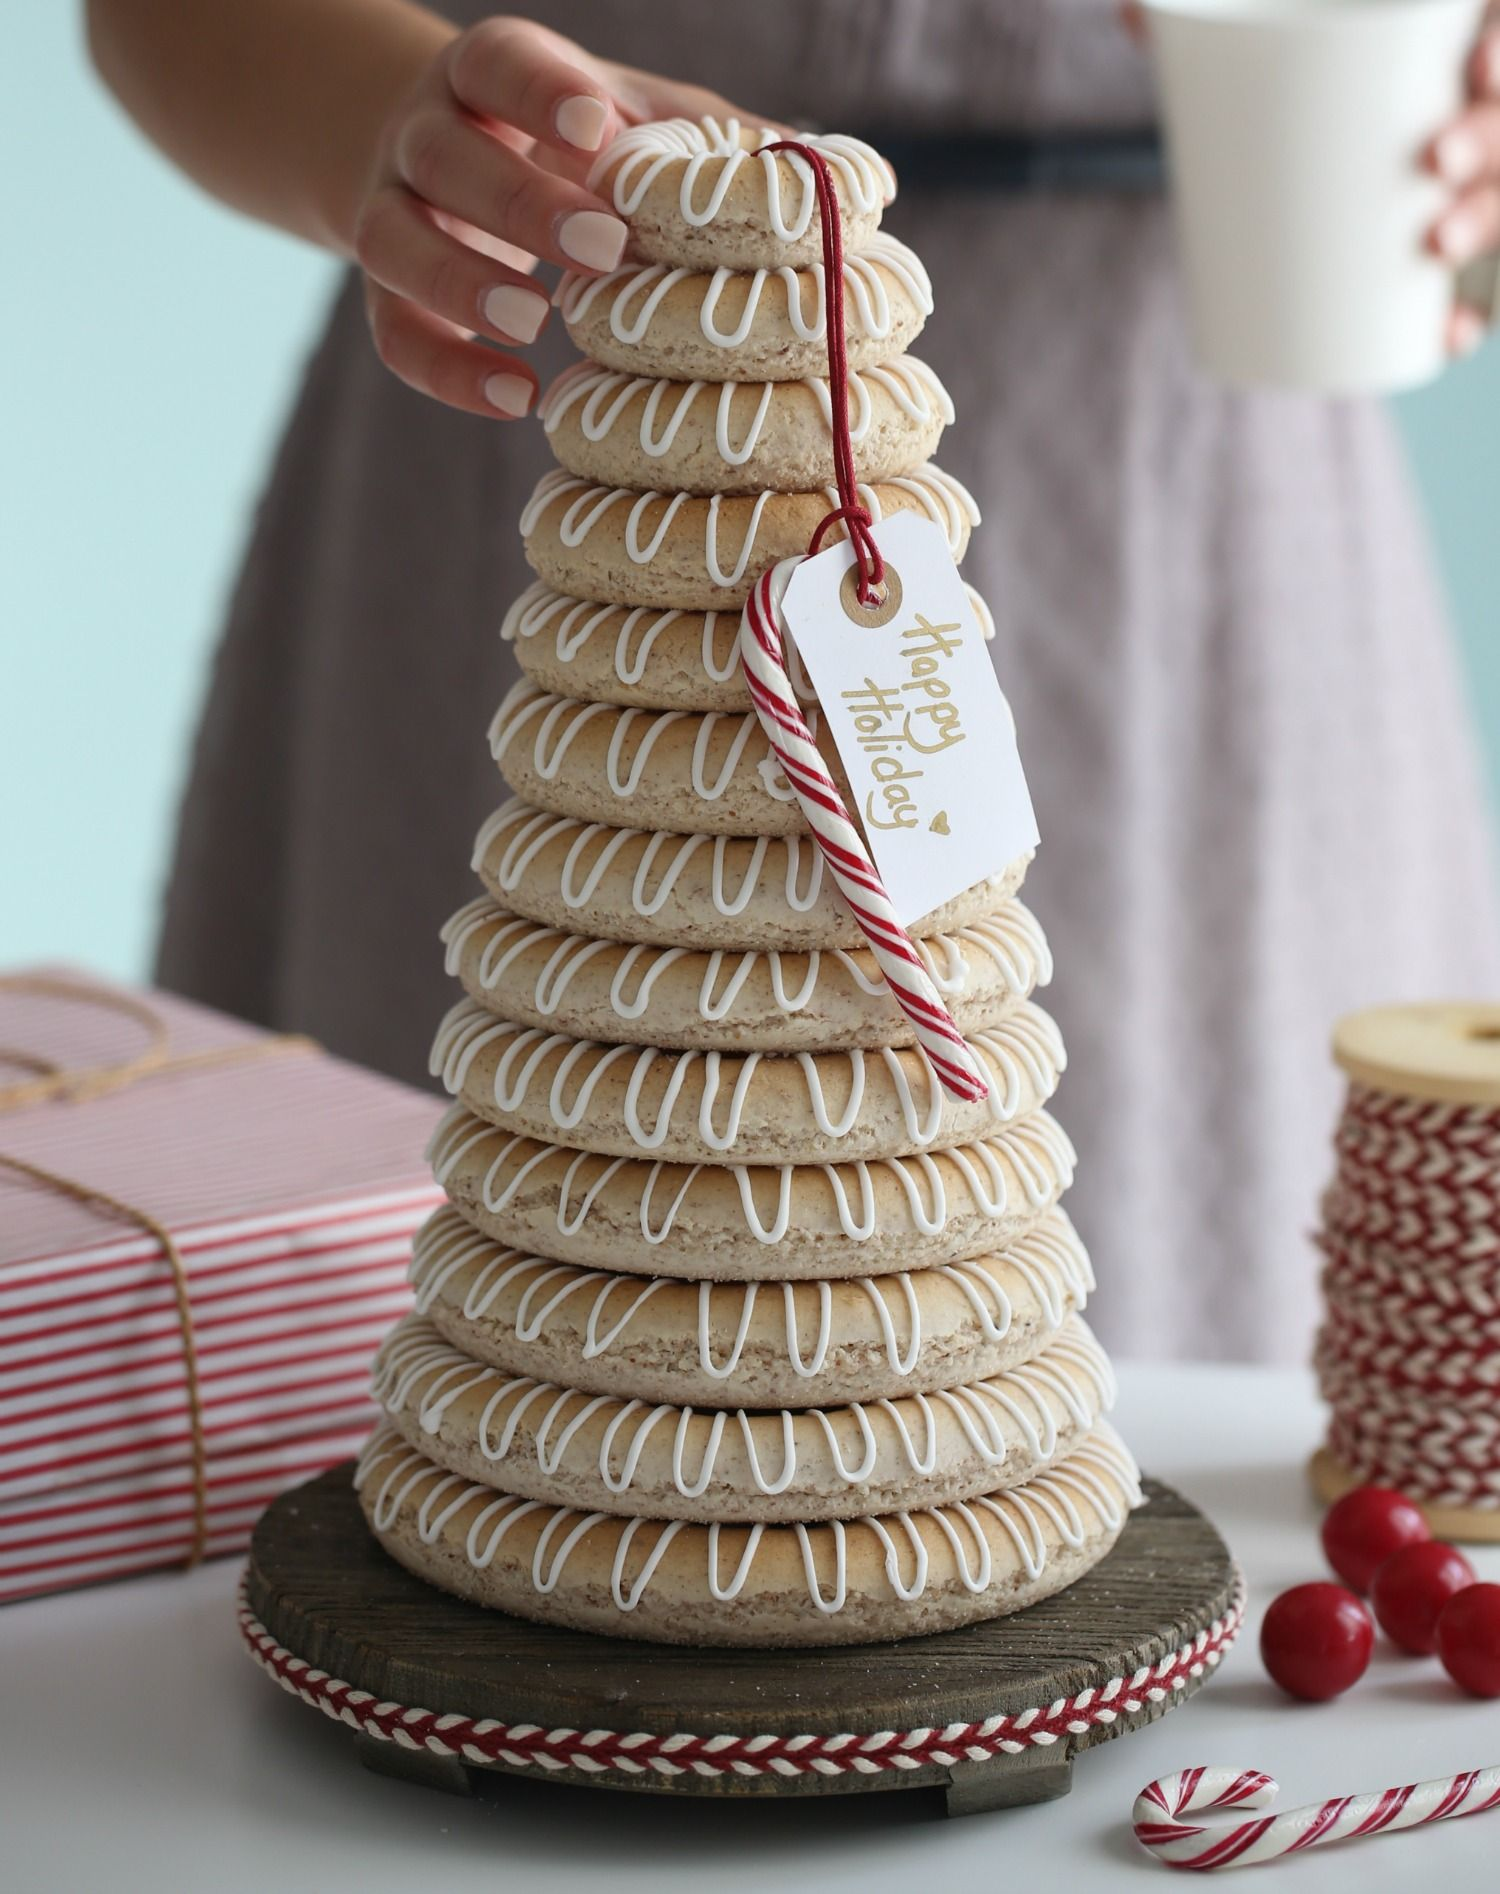 Almond Cookie Tower For The Holiday S Christmas Yumminess Almond